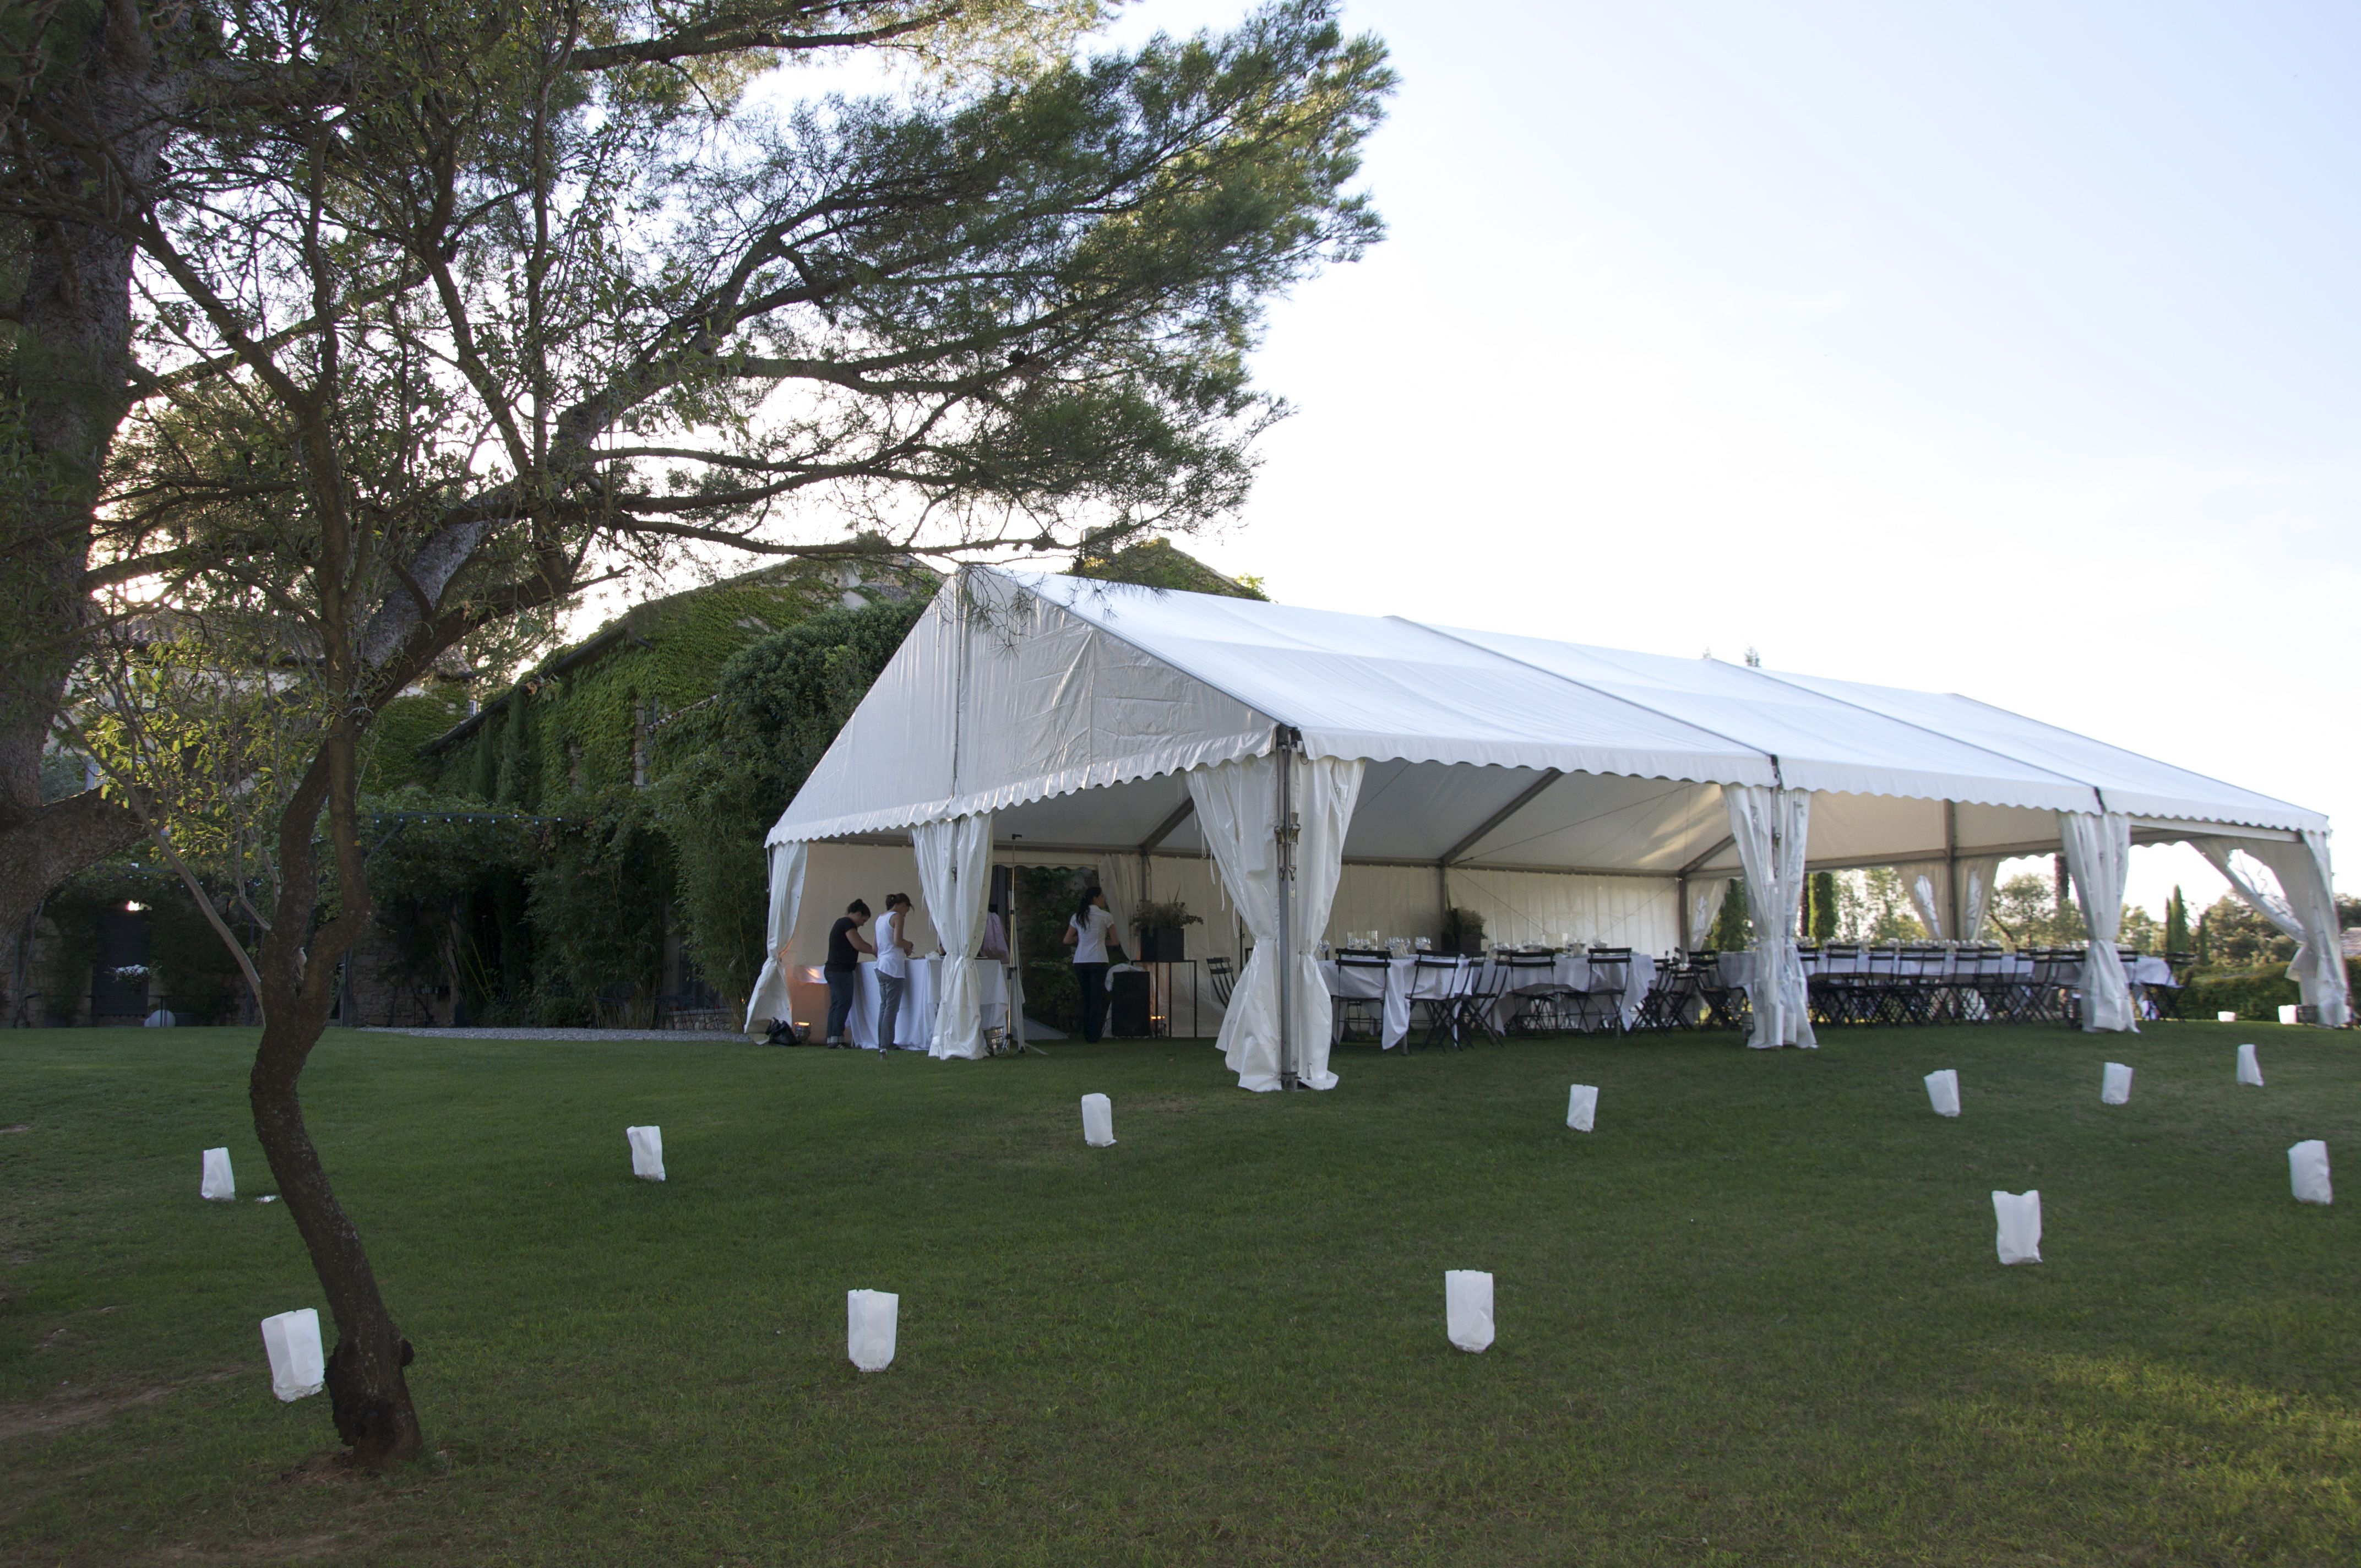 Wedding in Provence - Marquee Set Up